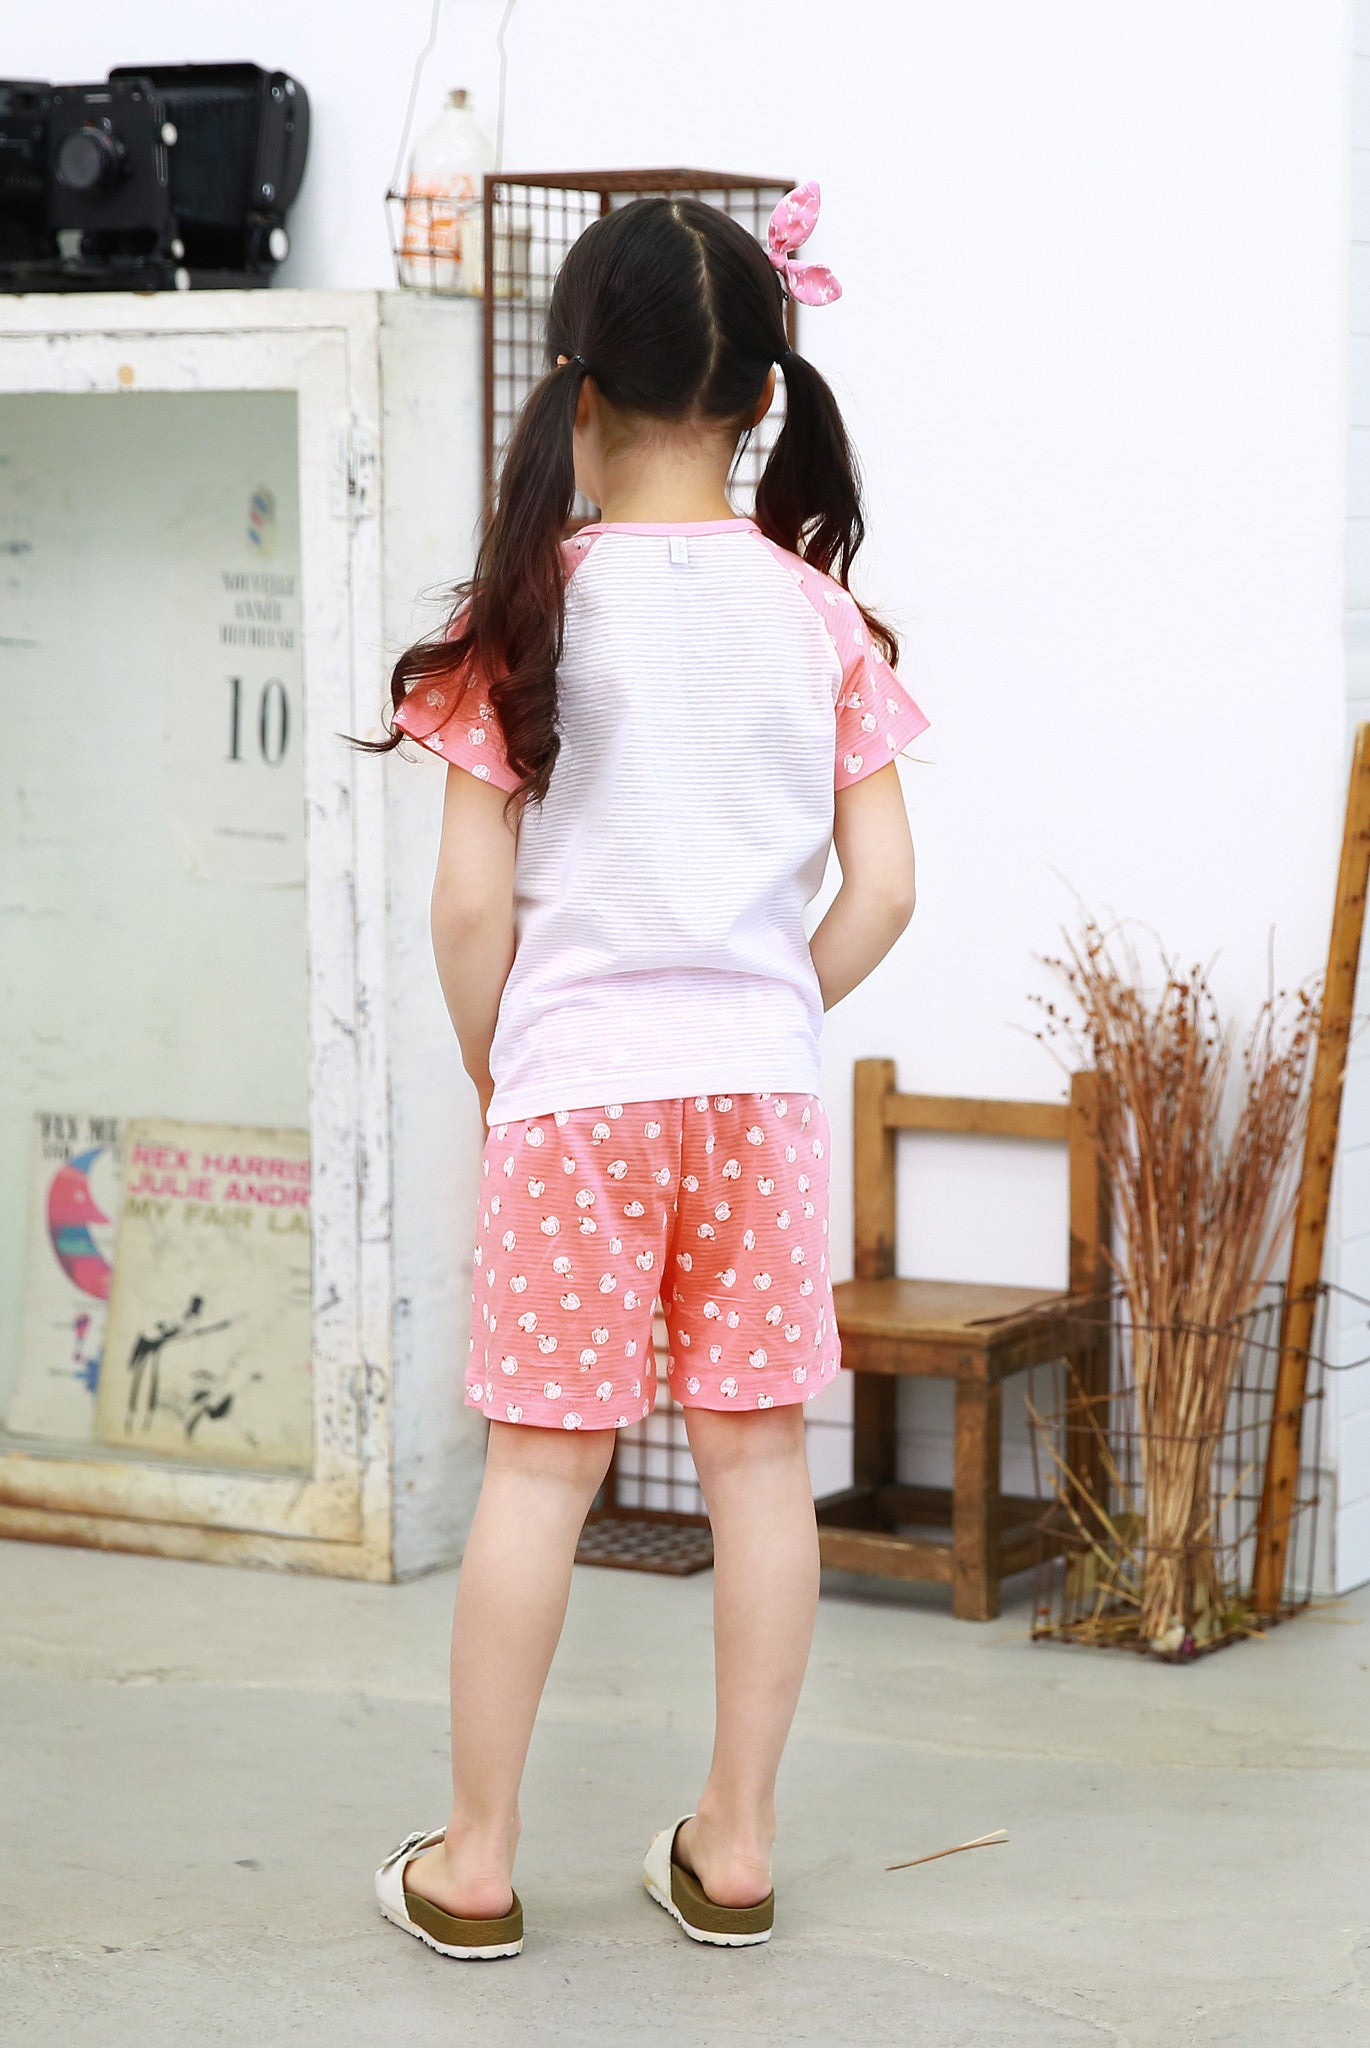 Easy Wear - Short Sleeve Sets - Pink Bunny